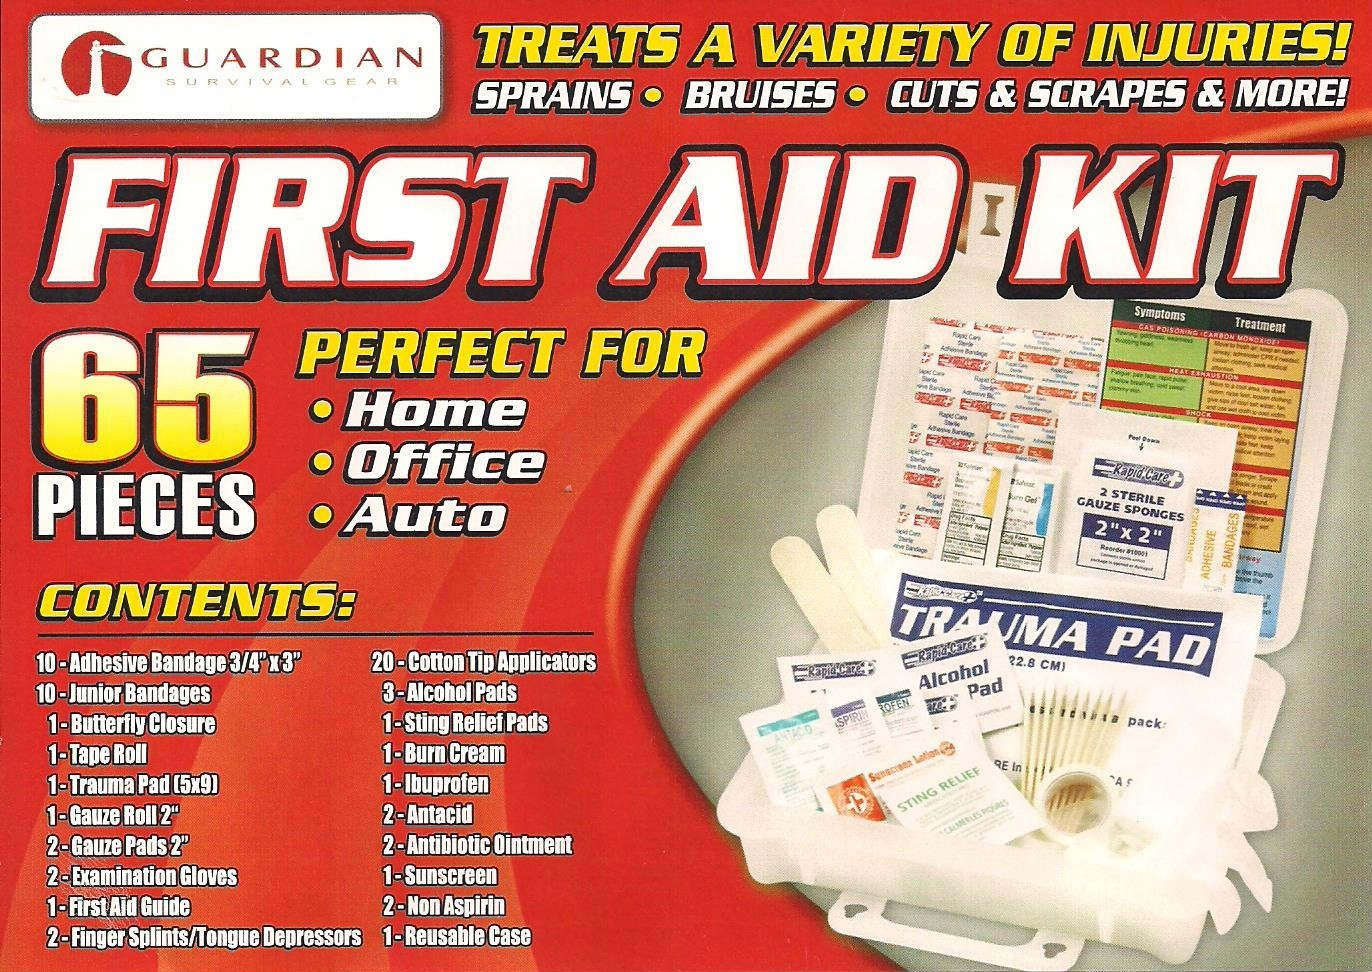 65 PIECE FIRST AID KIT